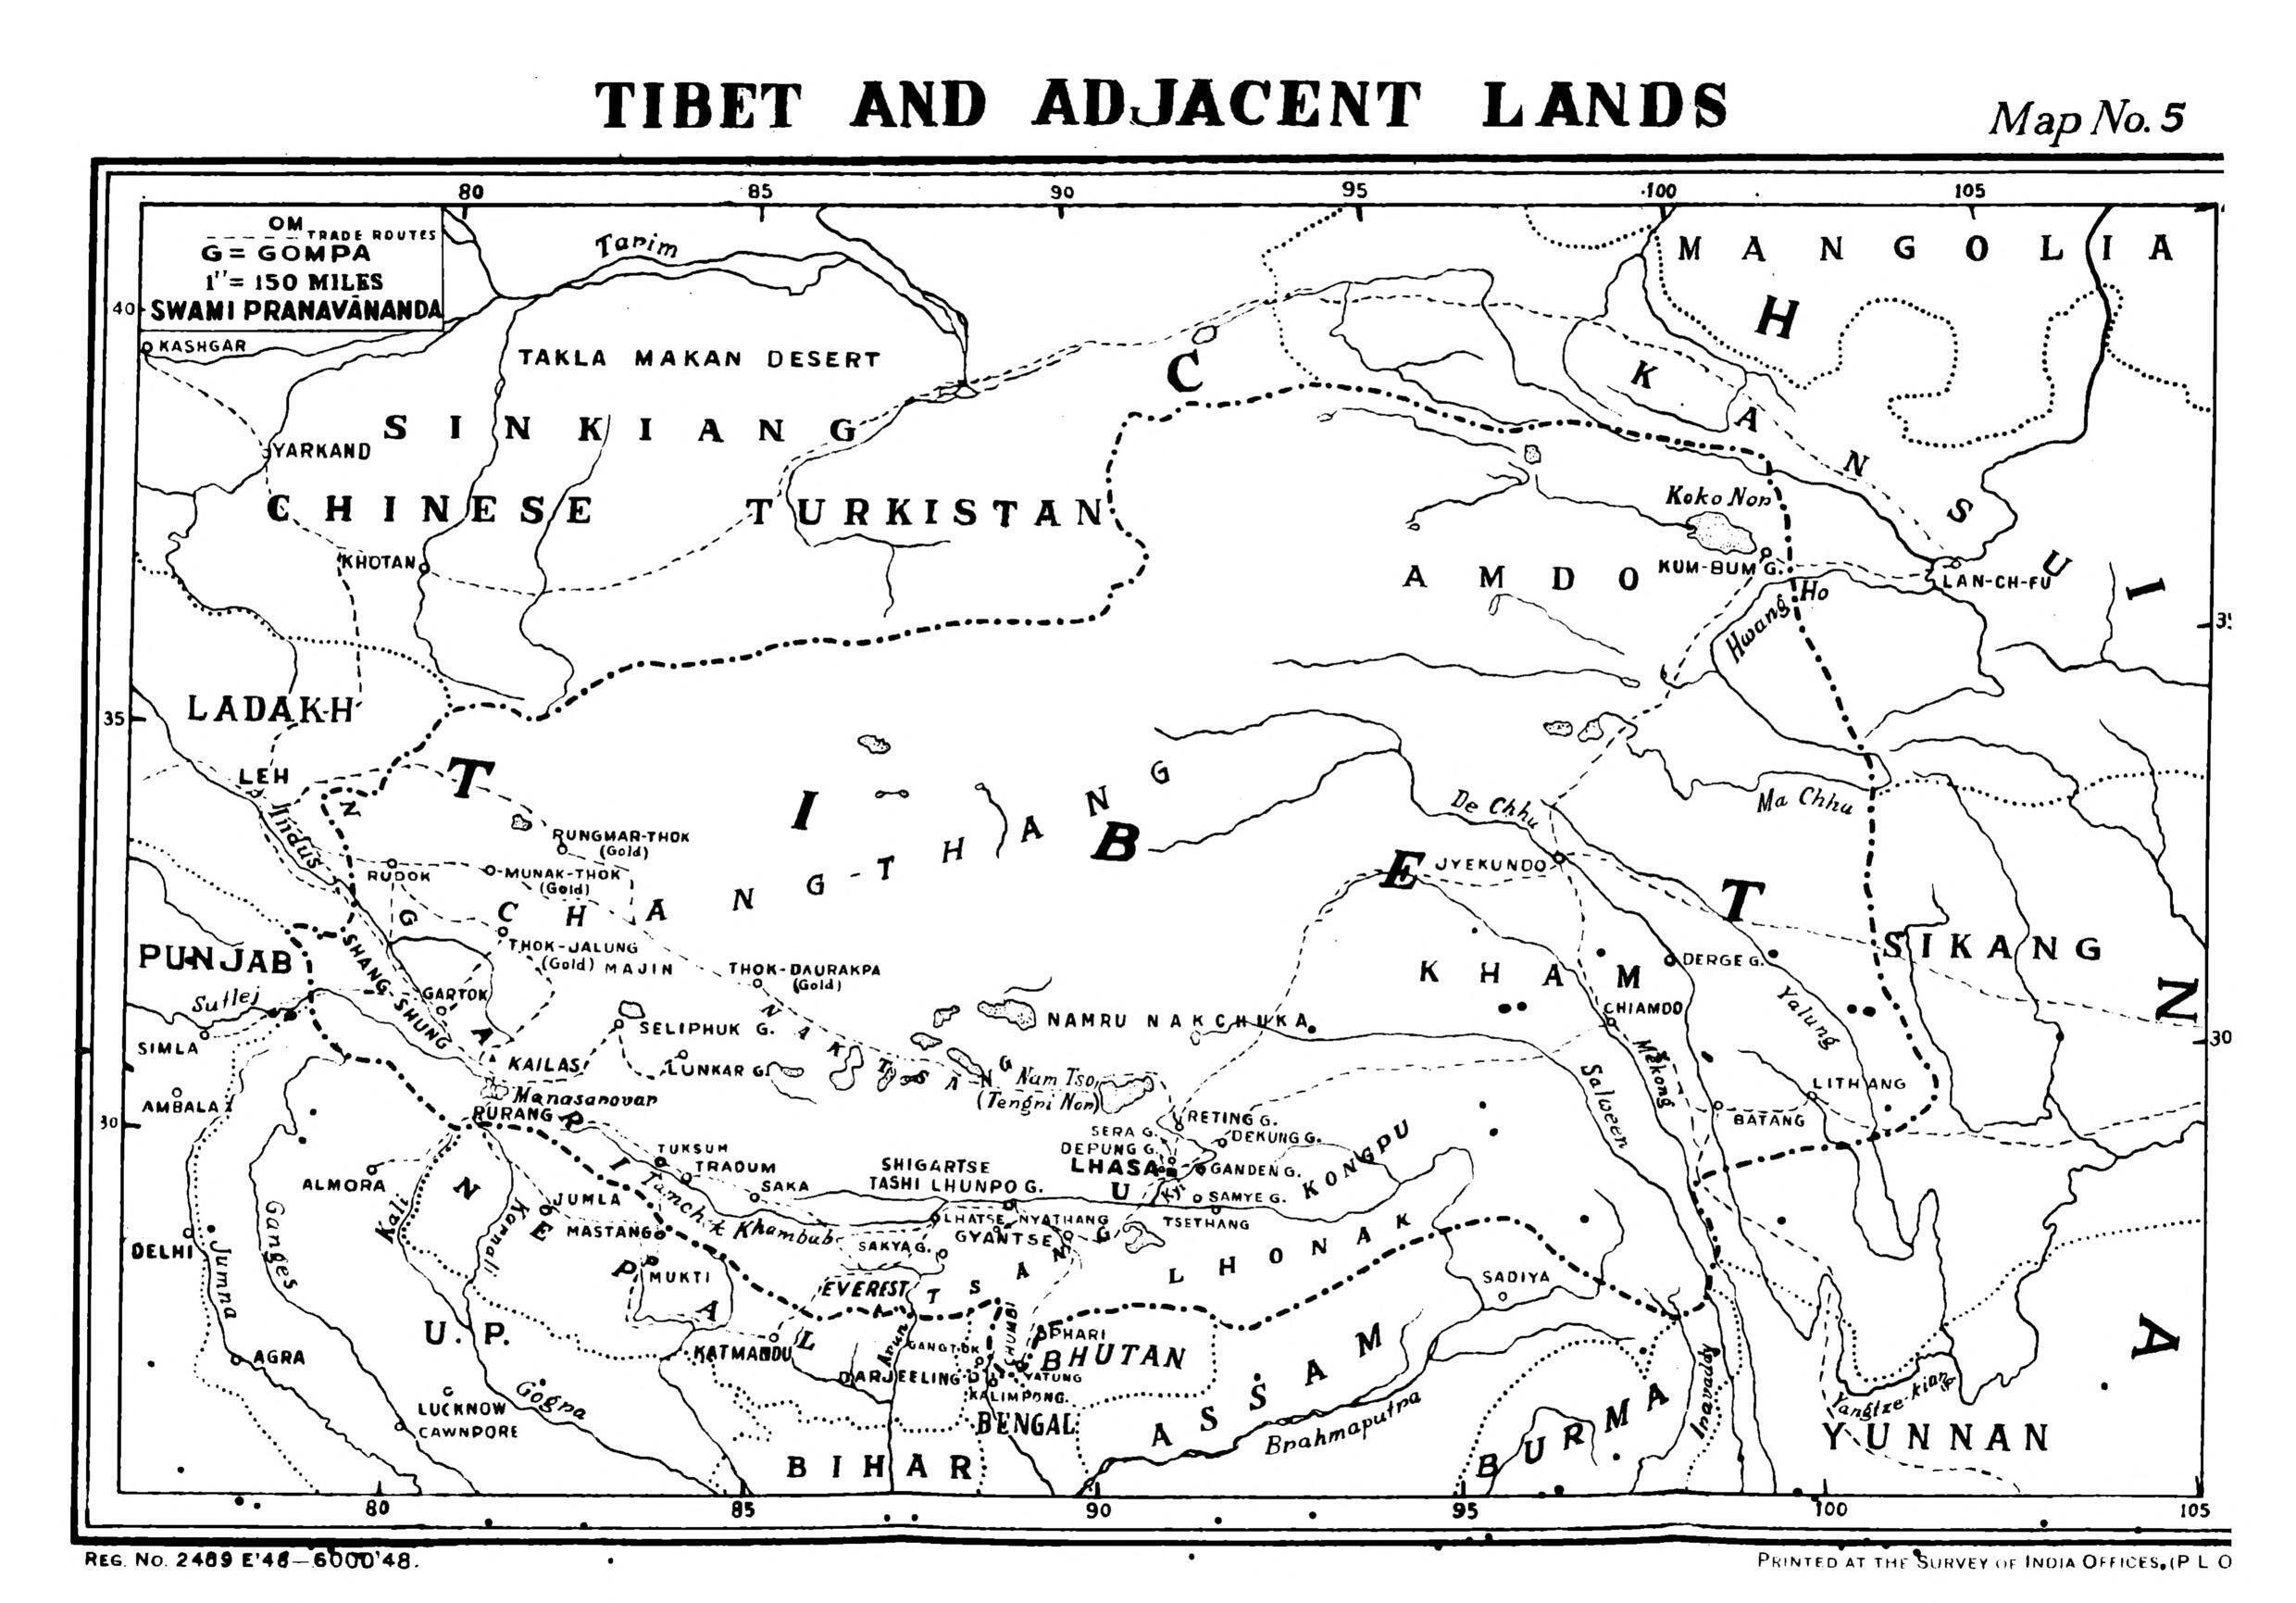 This 1949 map by the Survey of India shows the boundaries of the Tibetan regions at that time. Neither India, nor the UK ever officially recognised Tibet's independence.